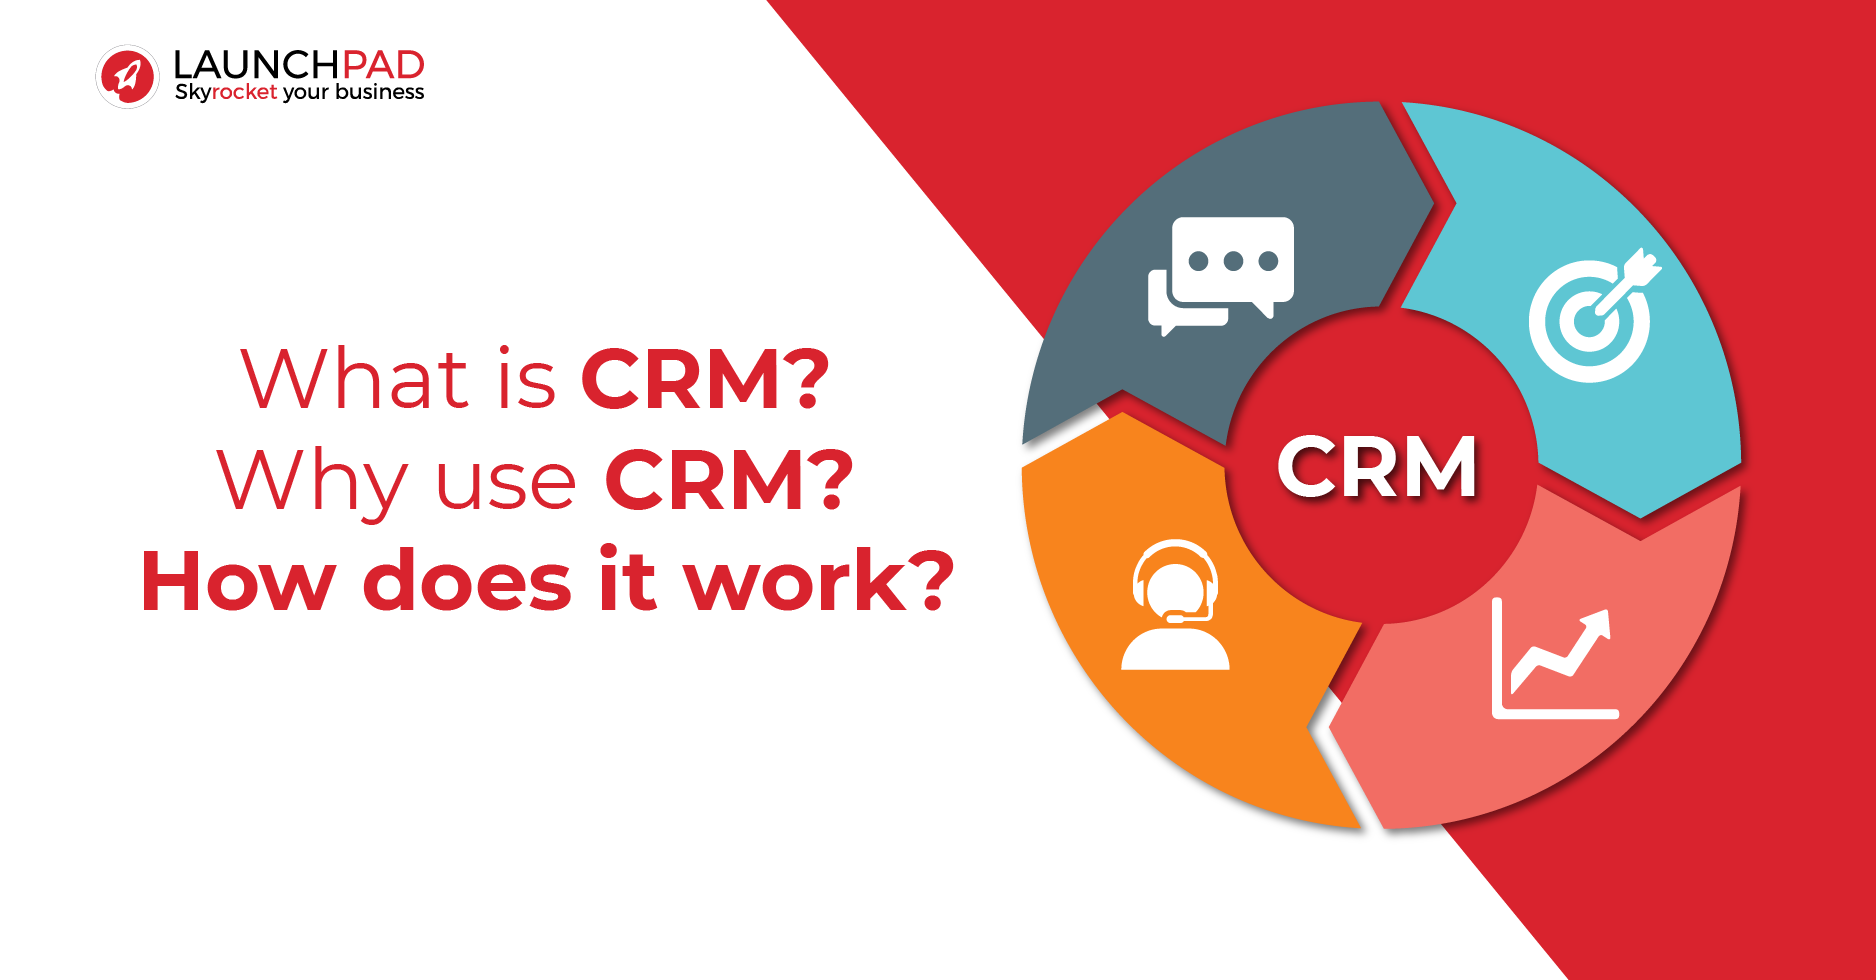 What is CRM? Why use CRM? How does it work?